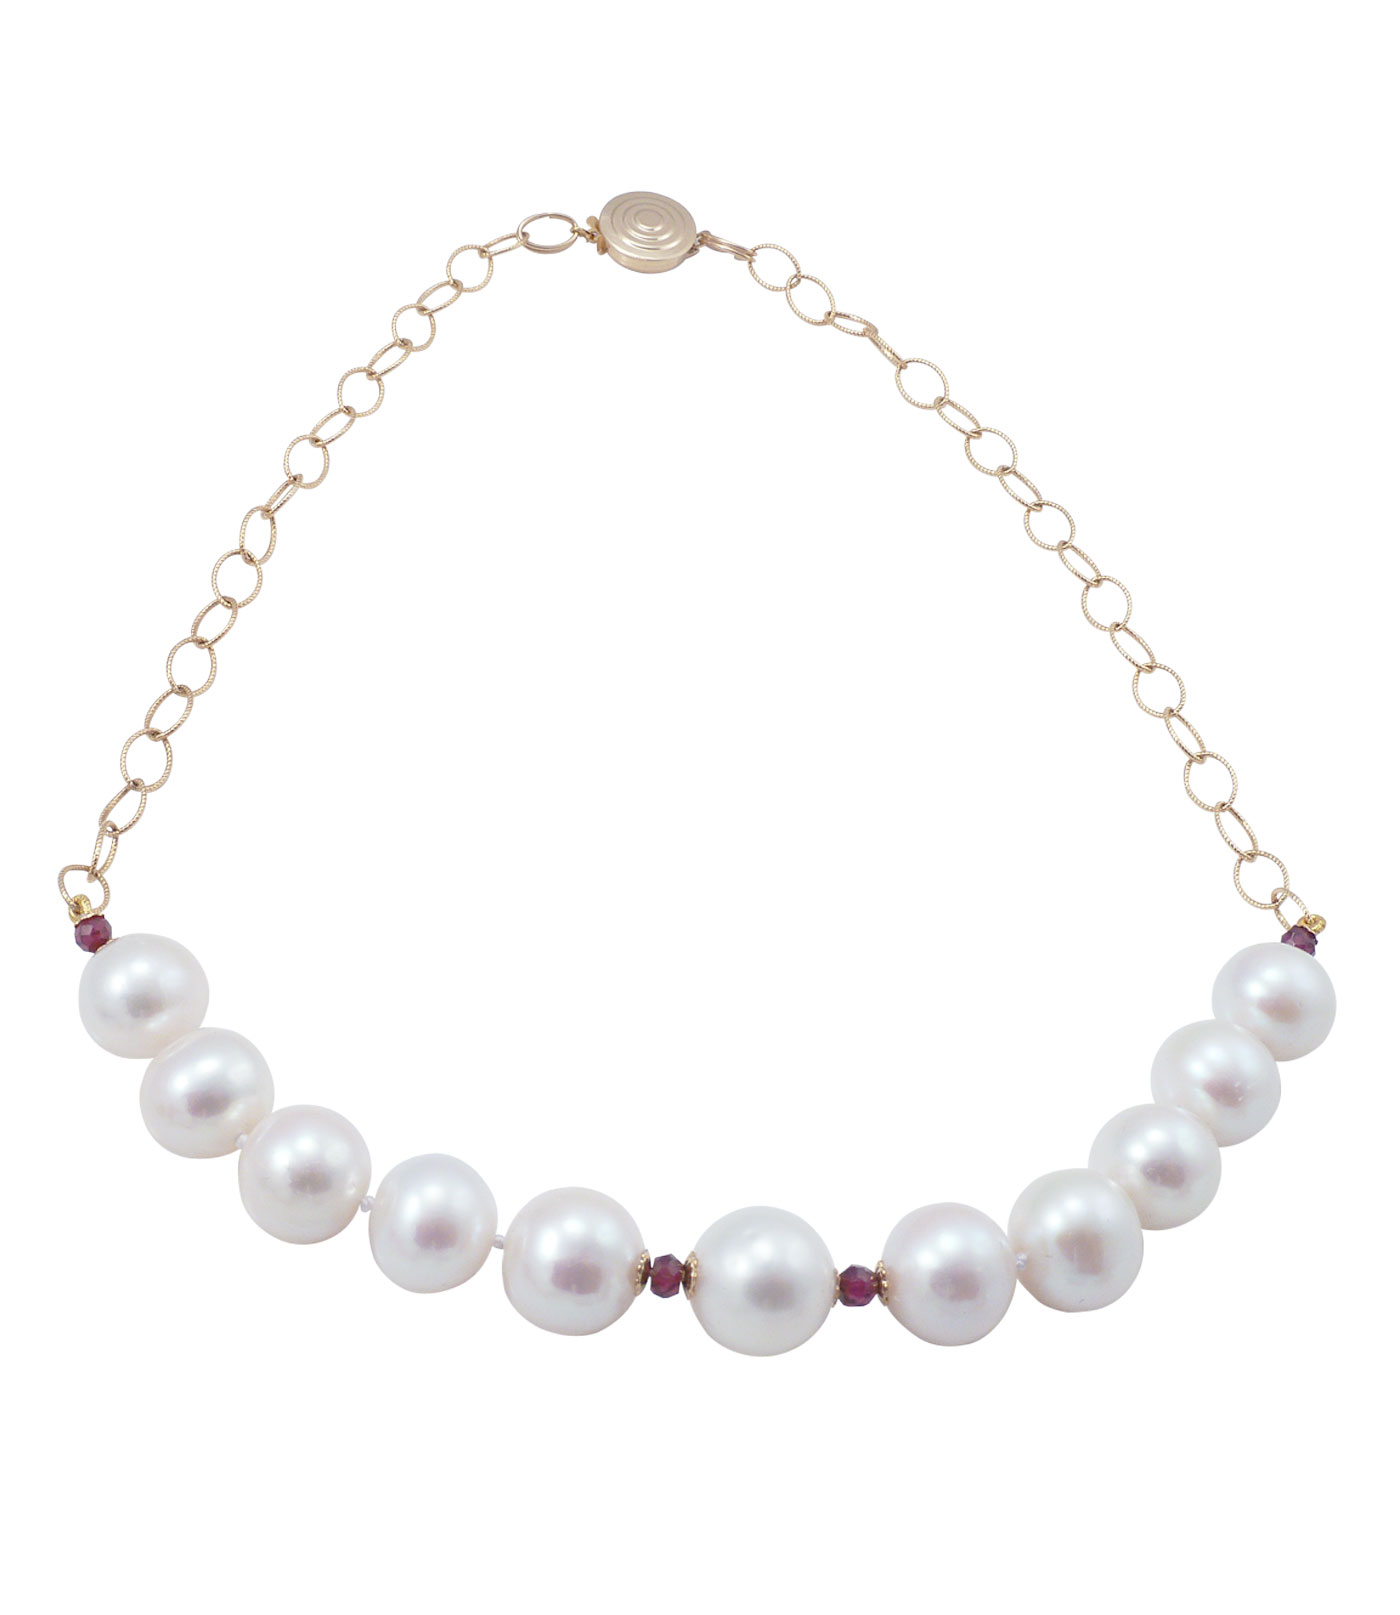 off retail premier january paradise clasp jewelry desktop cultured pearls necklace of pearl diamond jewellery progressive with over akoya strand